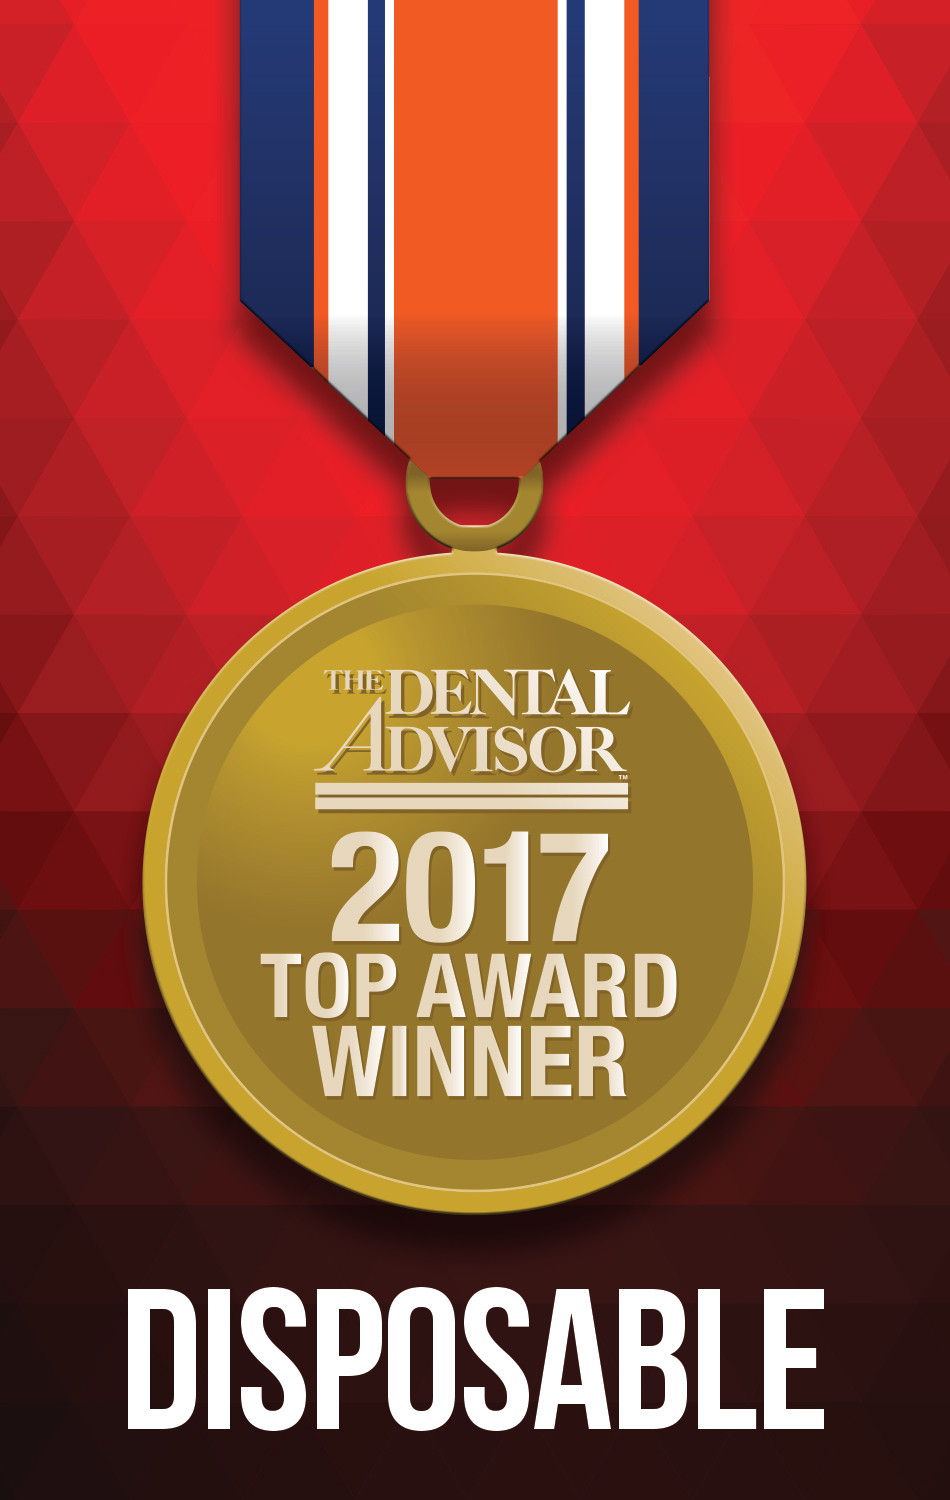 The Dental Advisor Top 2017 Awards - Disposable